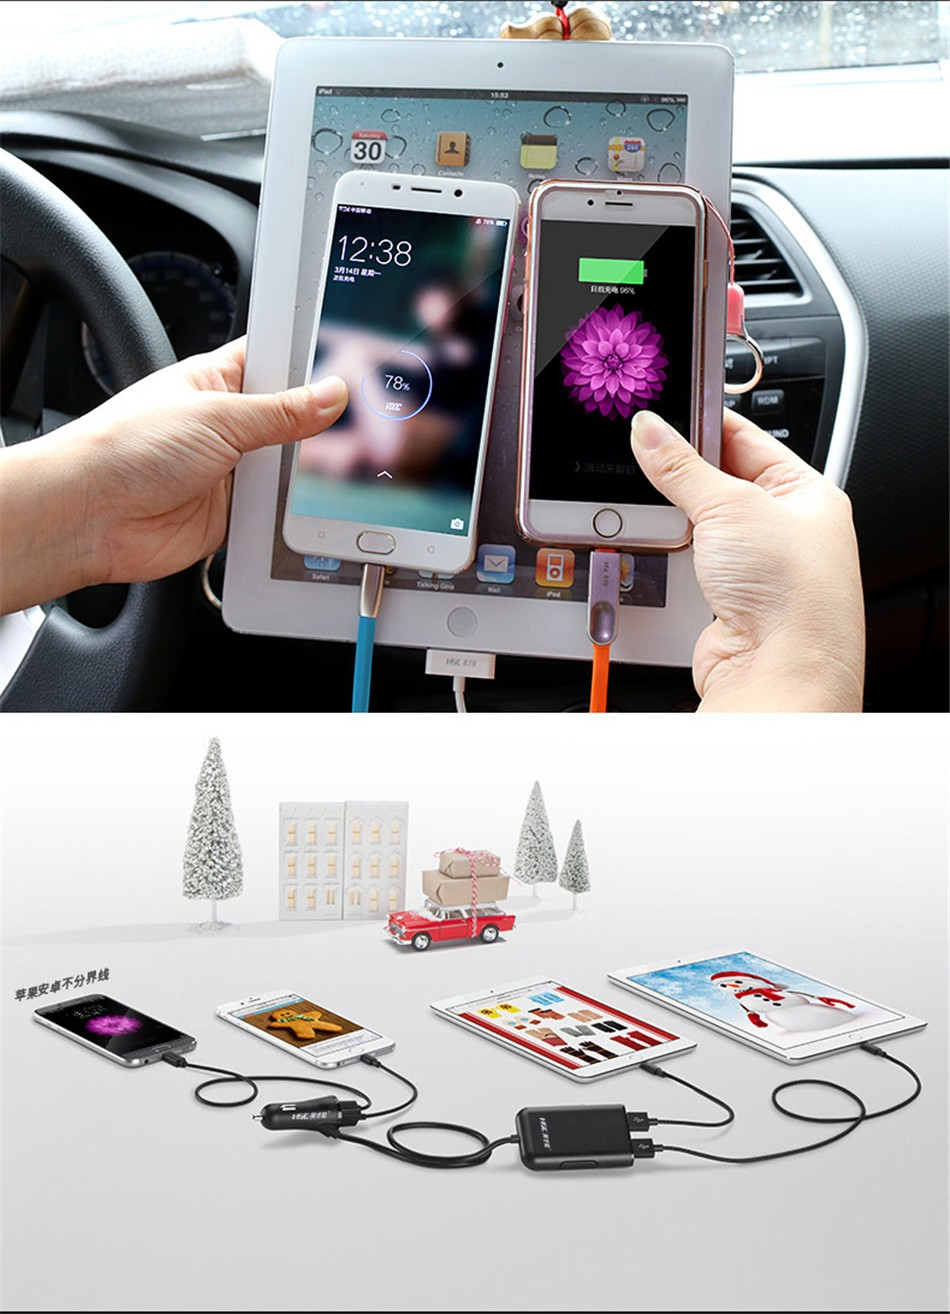 Brand HSC-600 car-charger 4 USB 4.8A Lengthen 1.8 meters , car charger for ipad iphone 5 5s 6 6s and samsung phone (10)